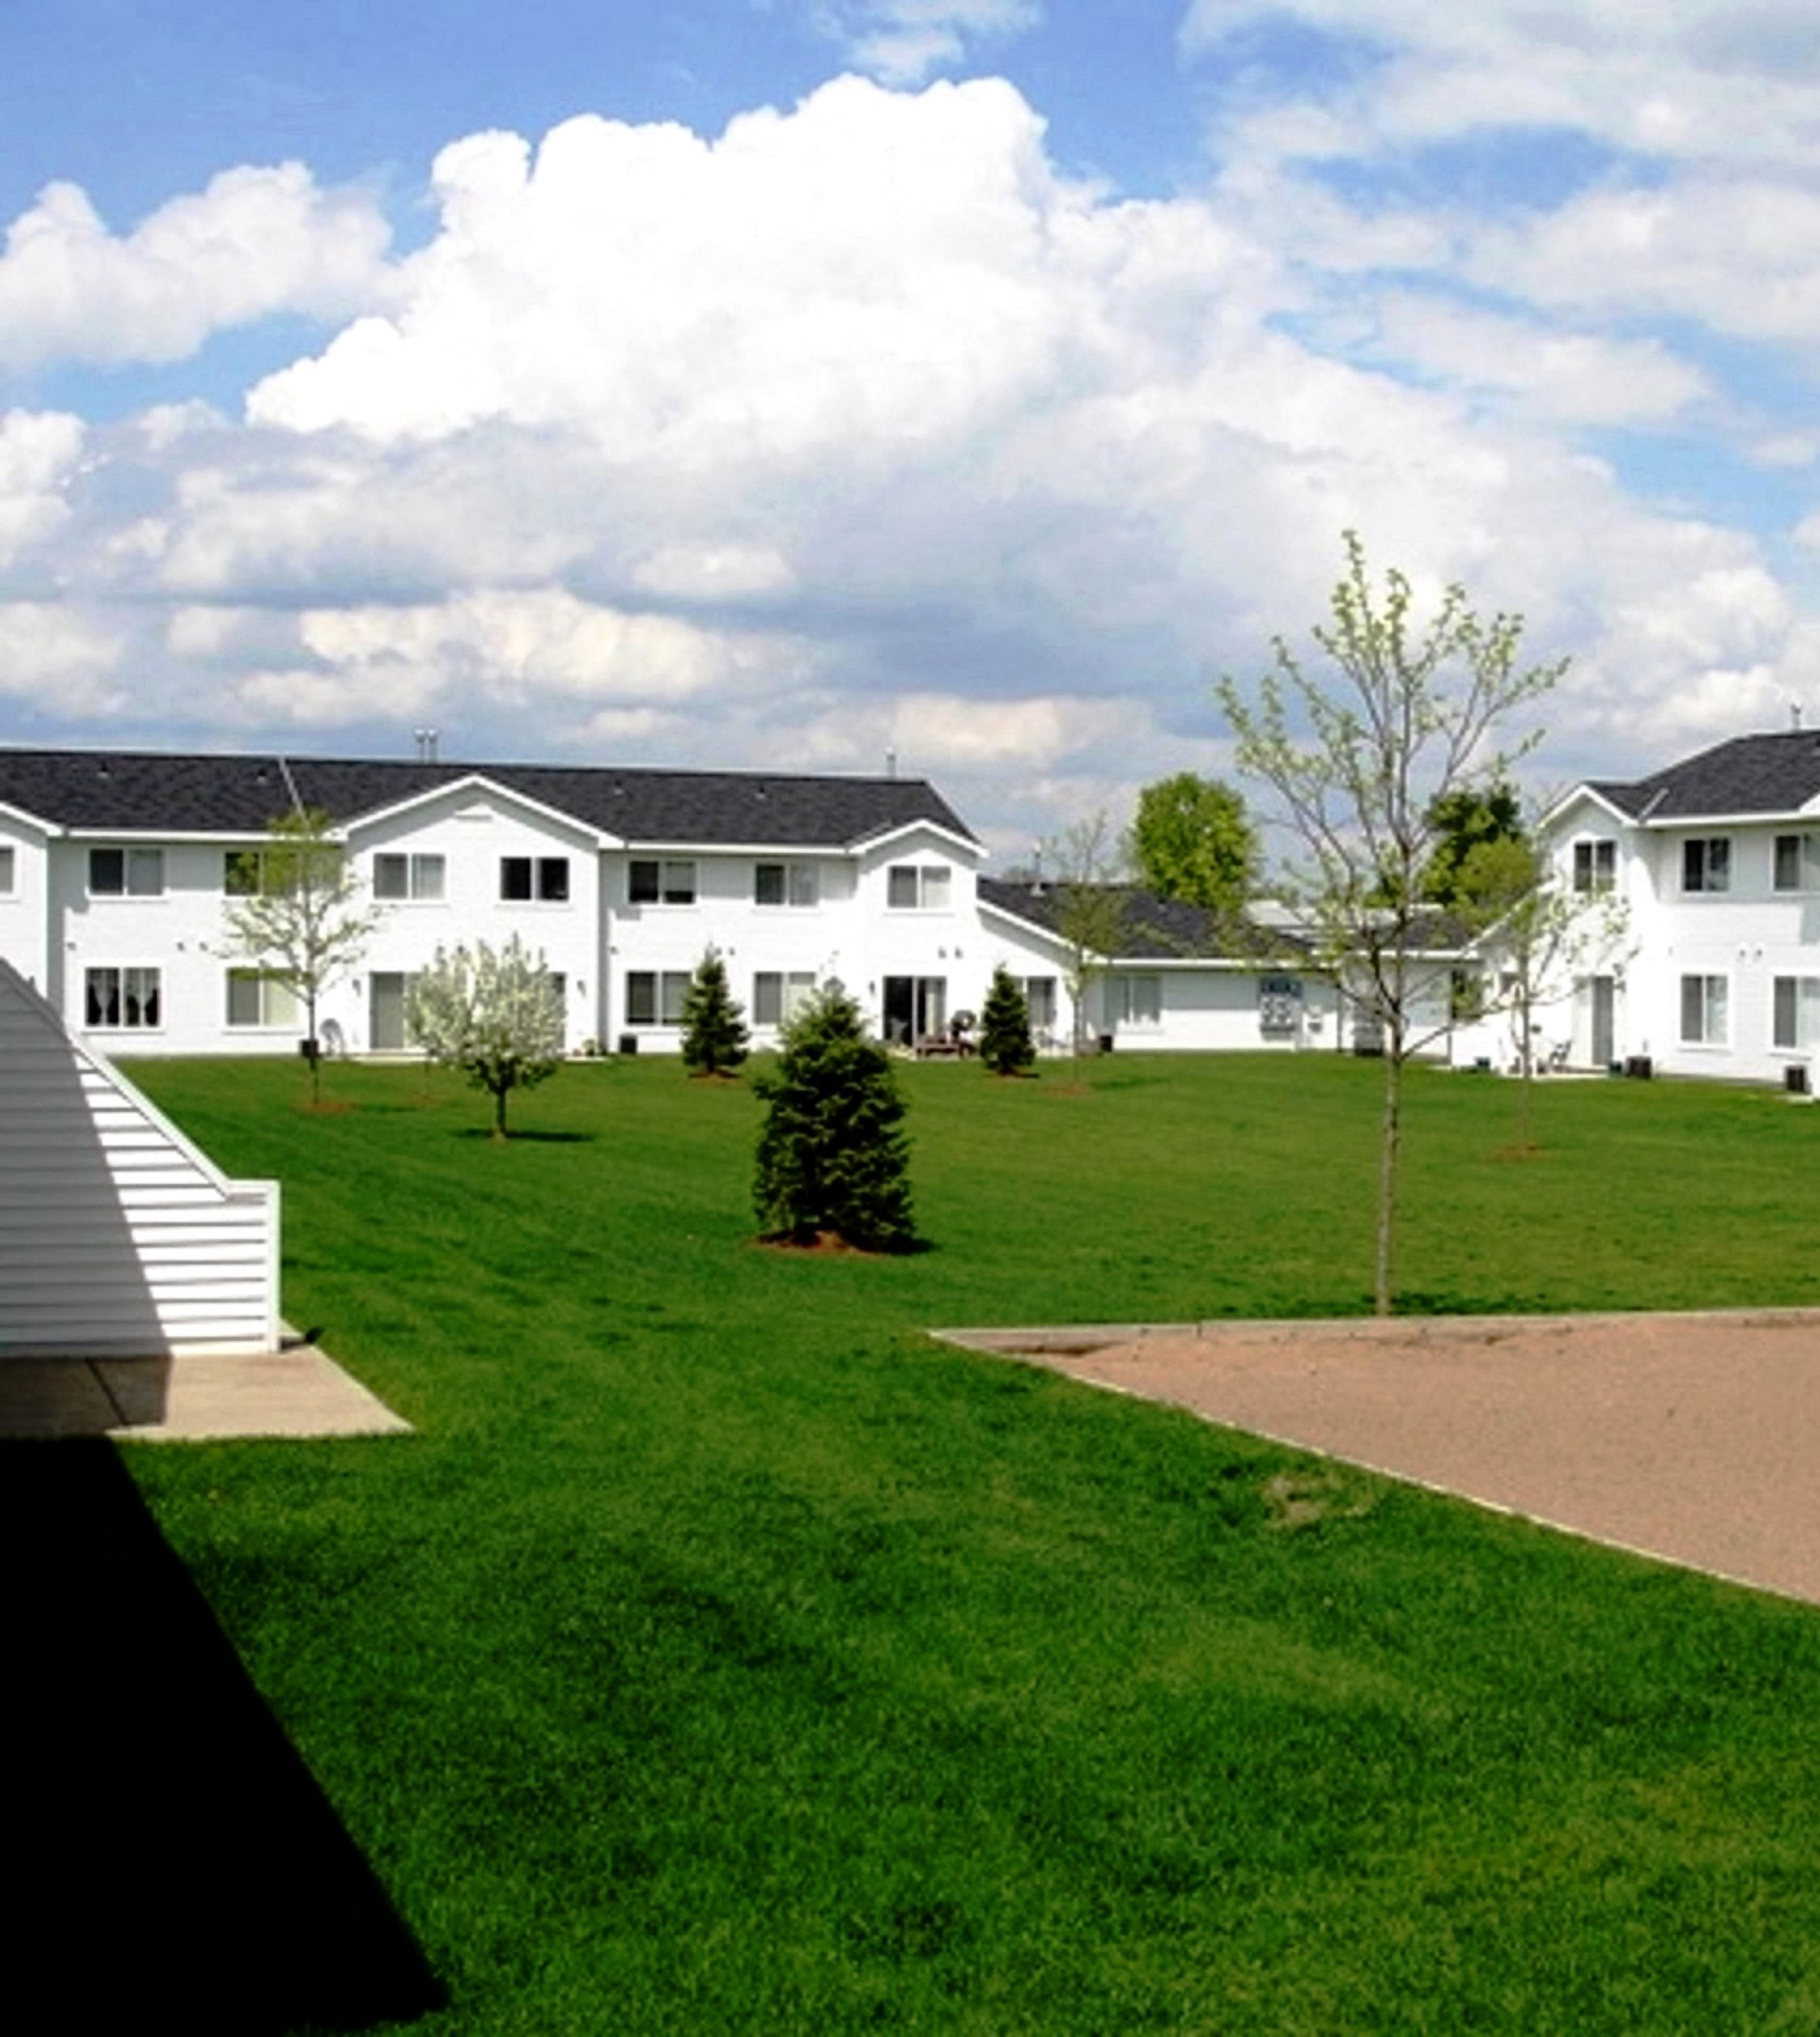 Townhouse Apartments: Apartments In Hudson, WI